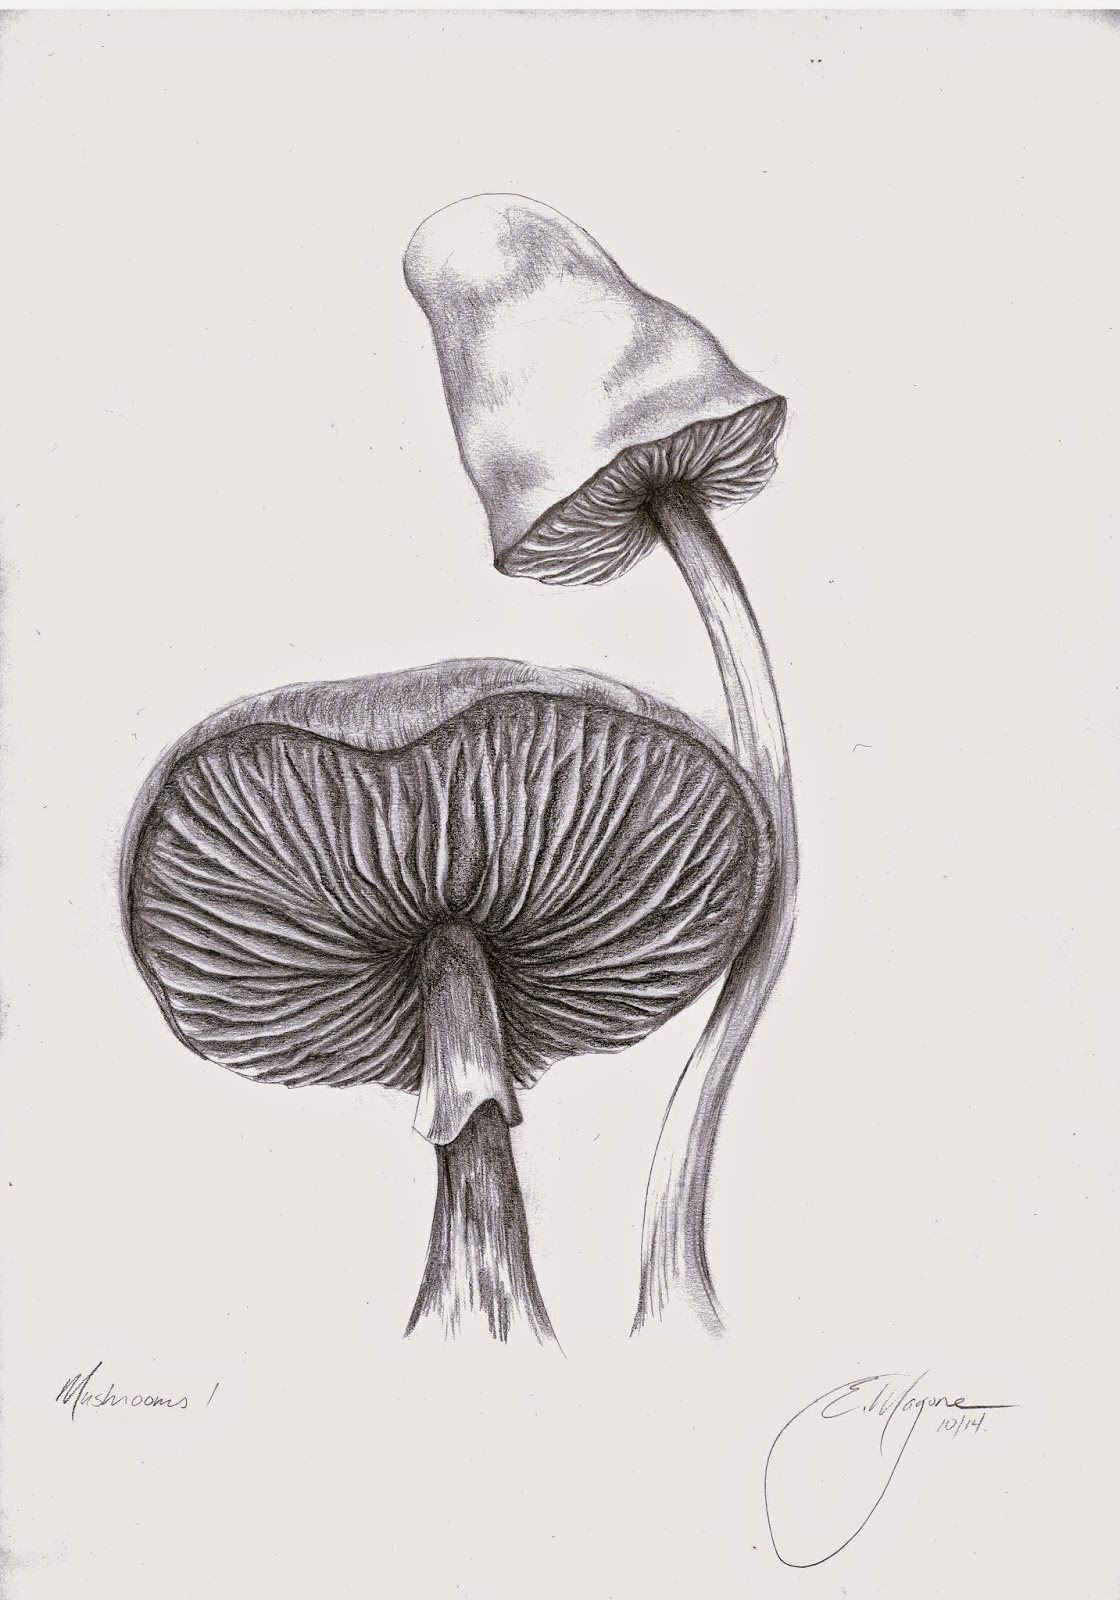 https://www.etsy.com/listing/205995341/original-mushroom-pencil-drawing-matted?ref=listing-shop-header-0